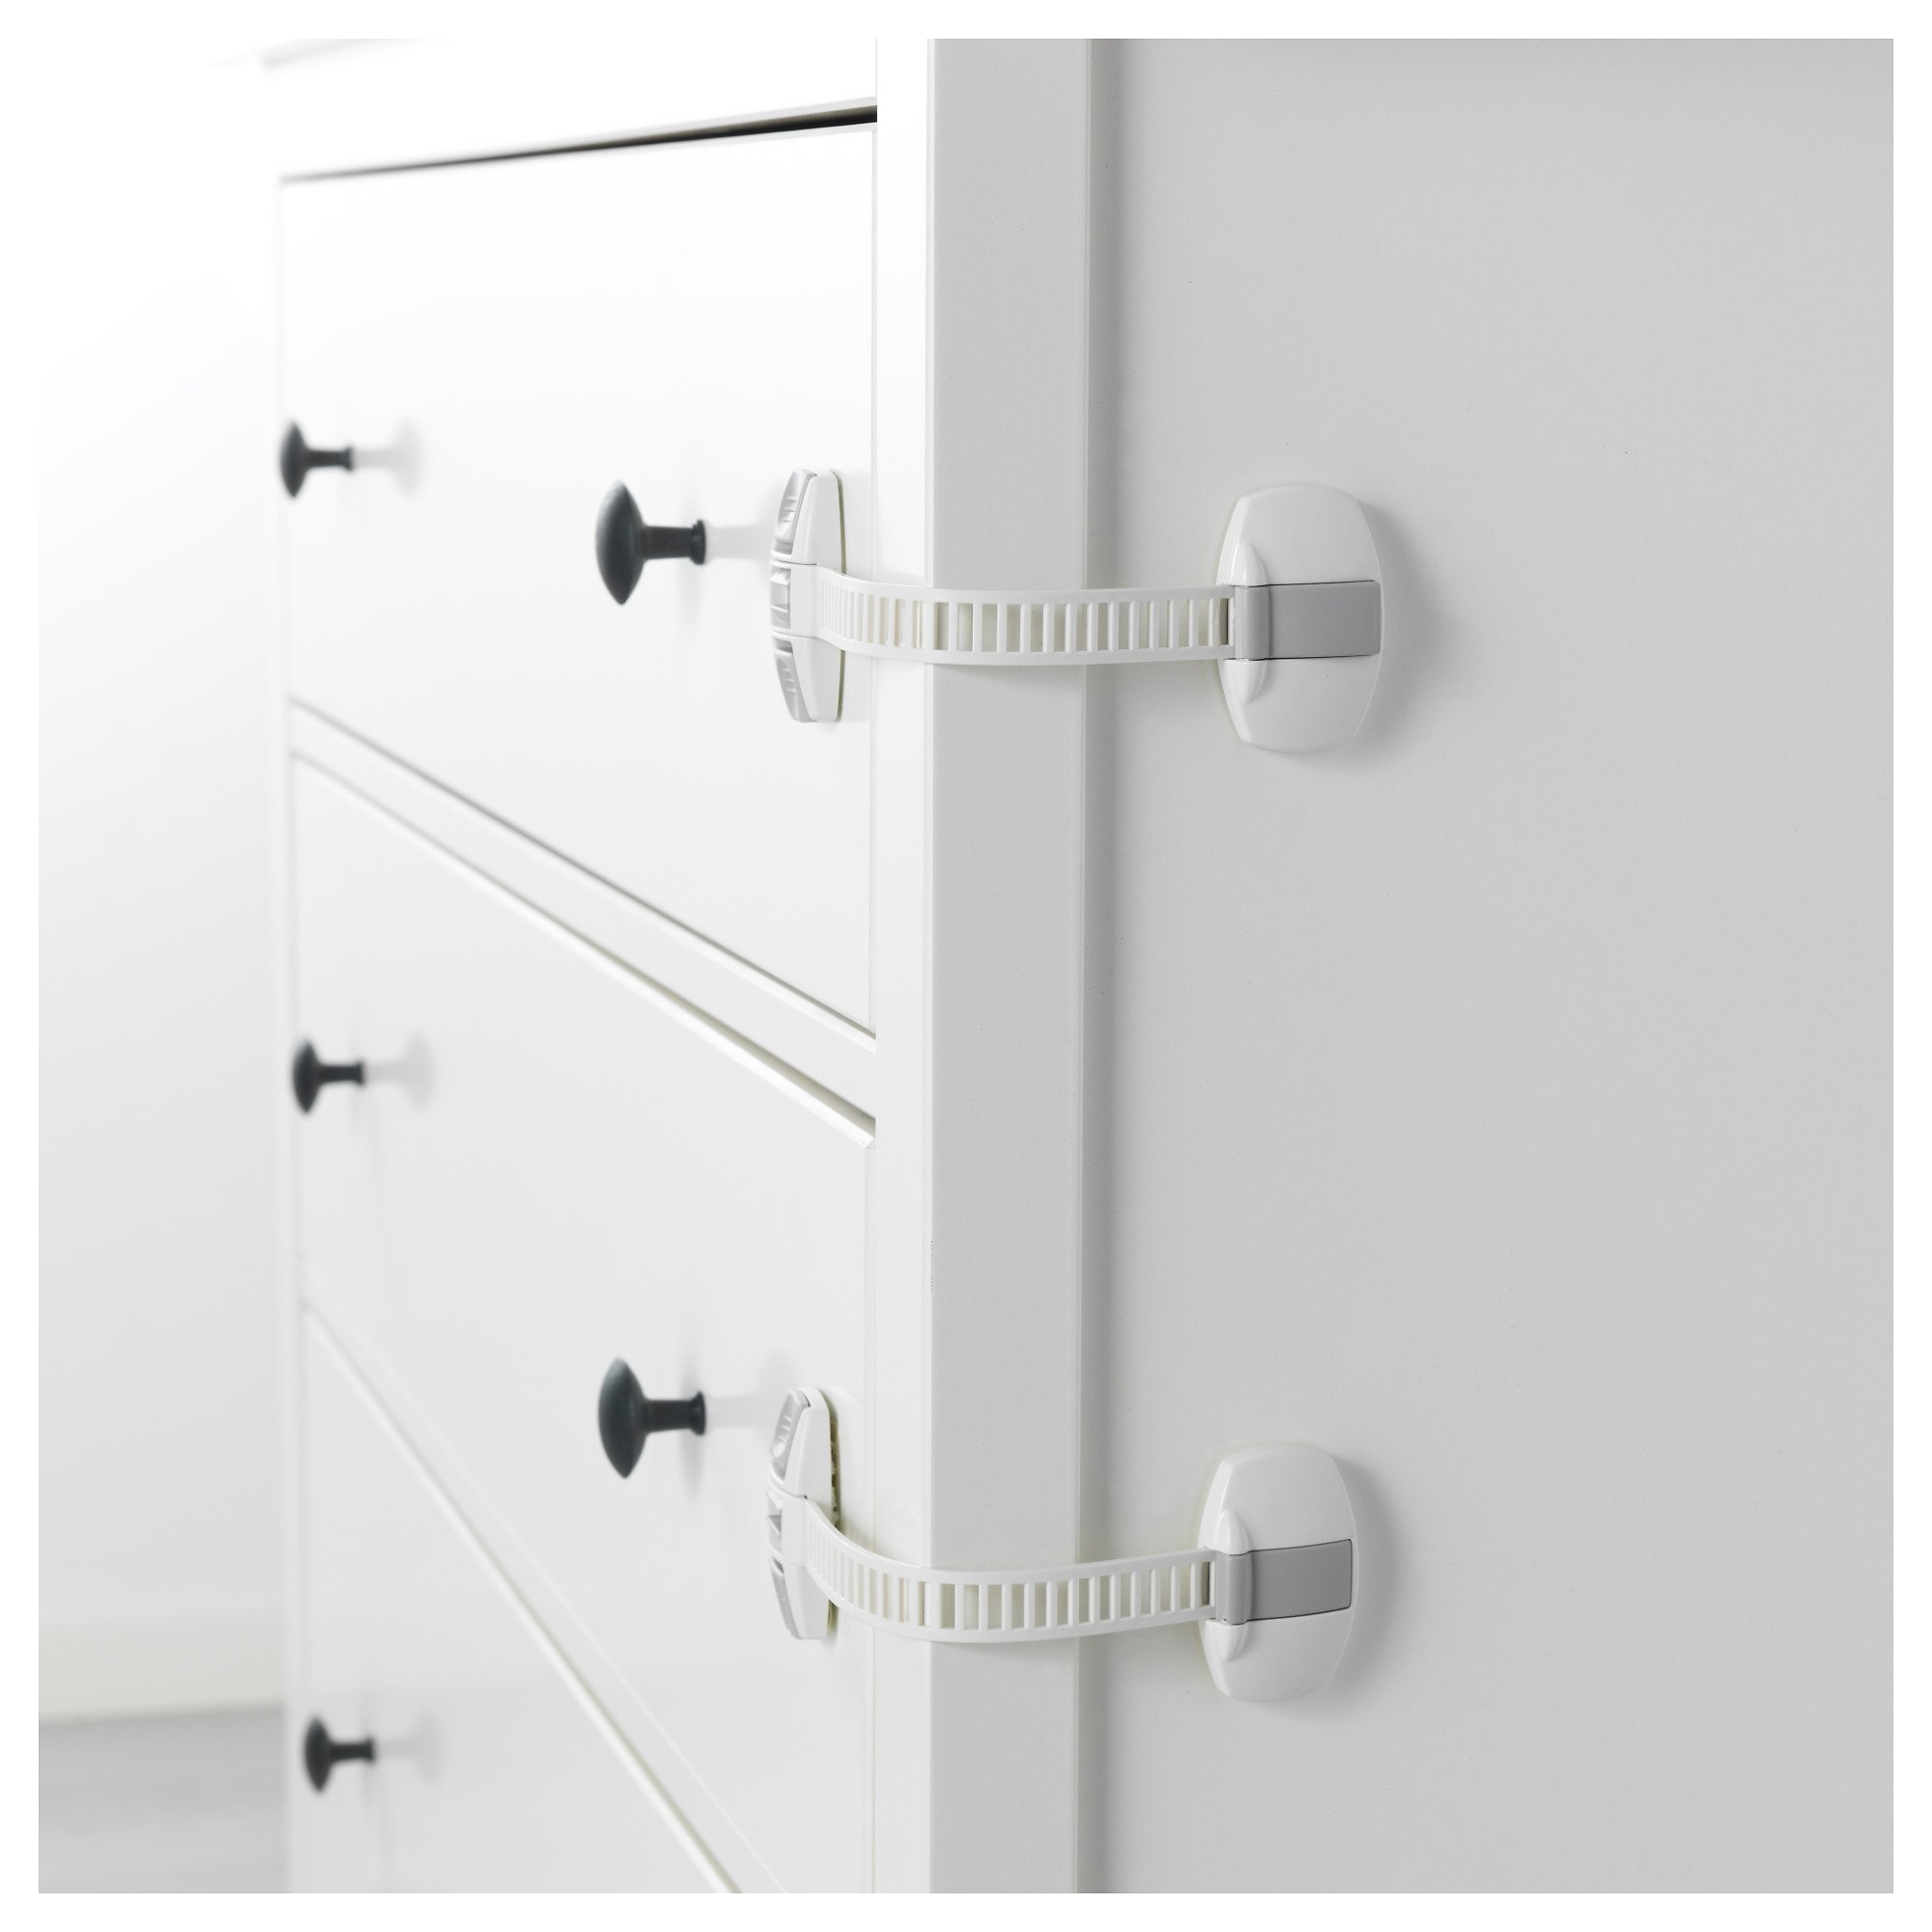 IKEA Patrull Locking Child Safety Latches For Fridge, Trash Can, Toilet, Dresser Drawers, Medicine Cabinet - Can Be Used in Kitchen, Baby's Room, Bathroom, Bedroom